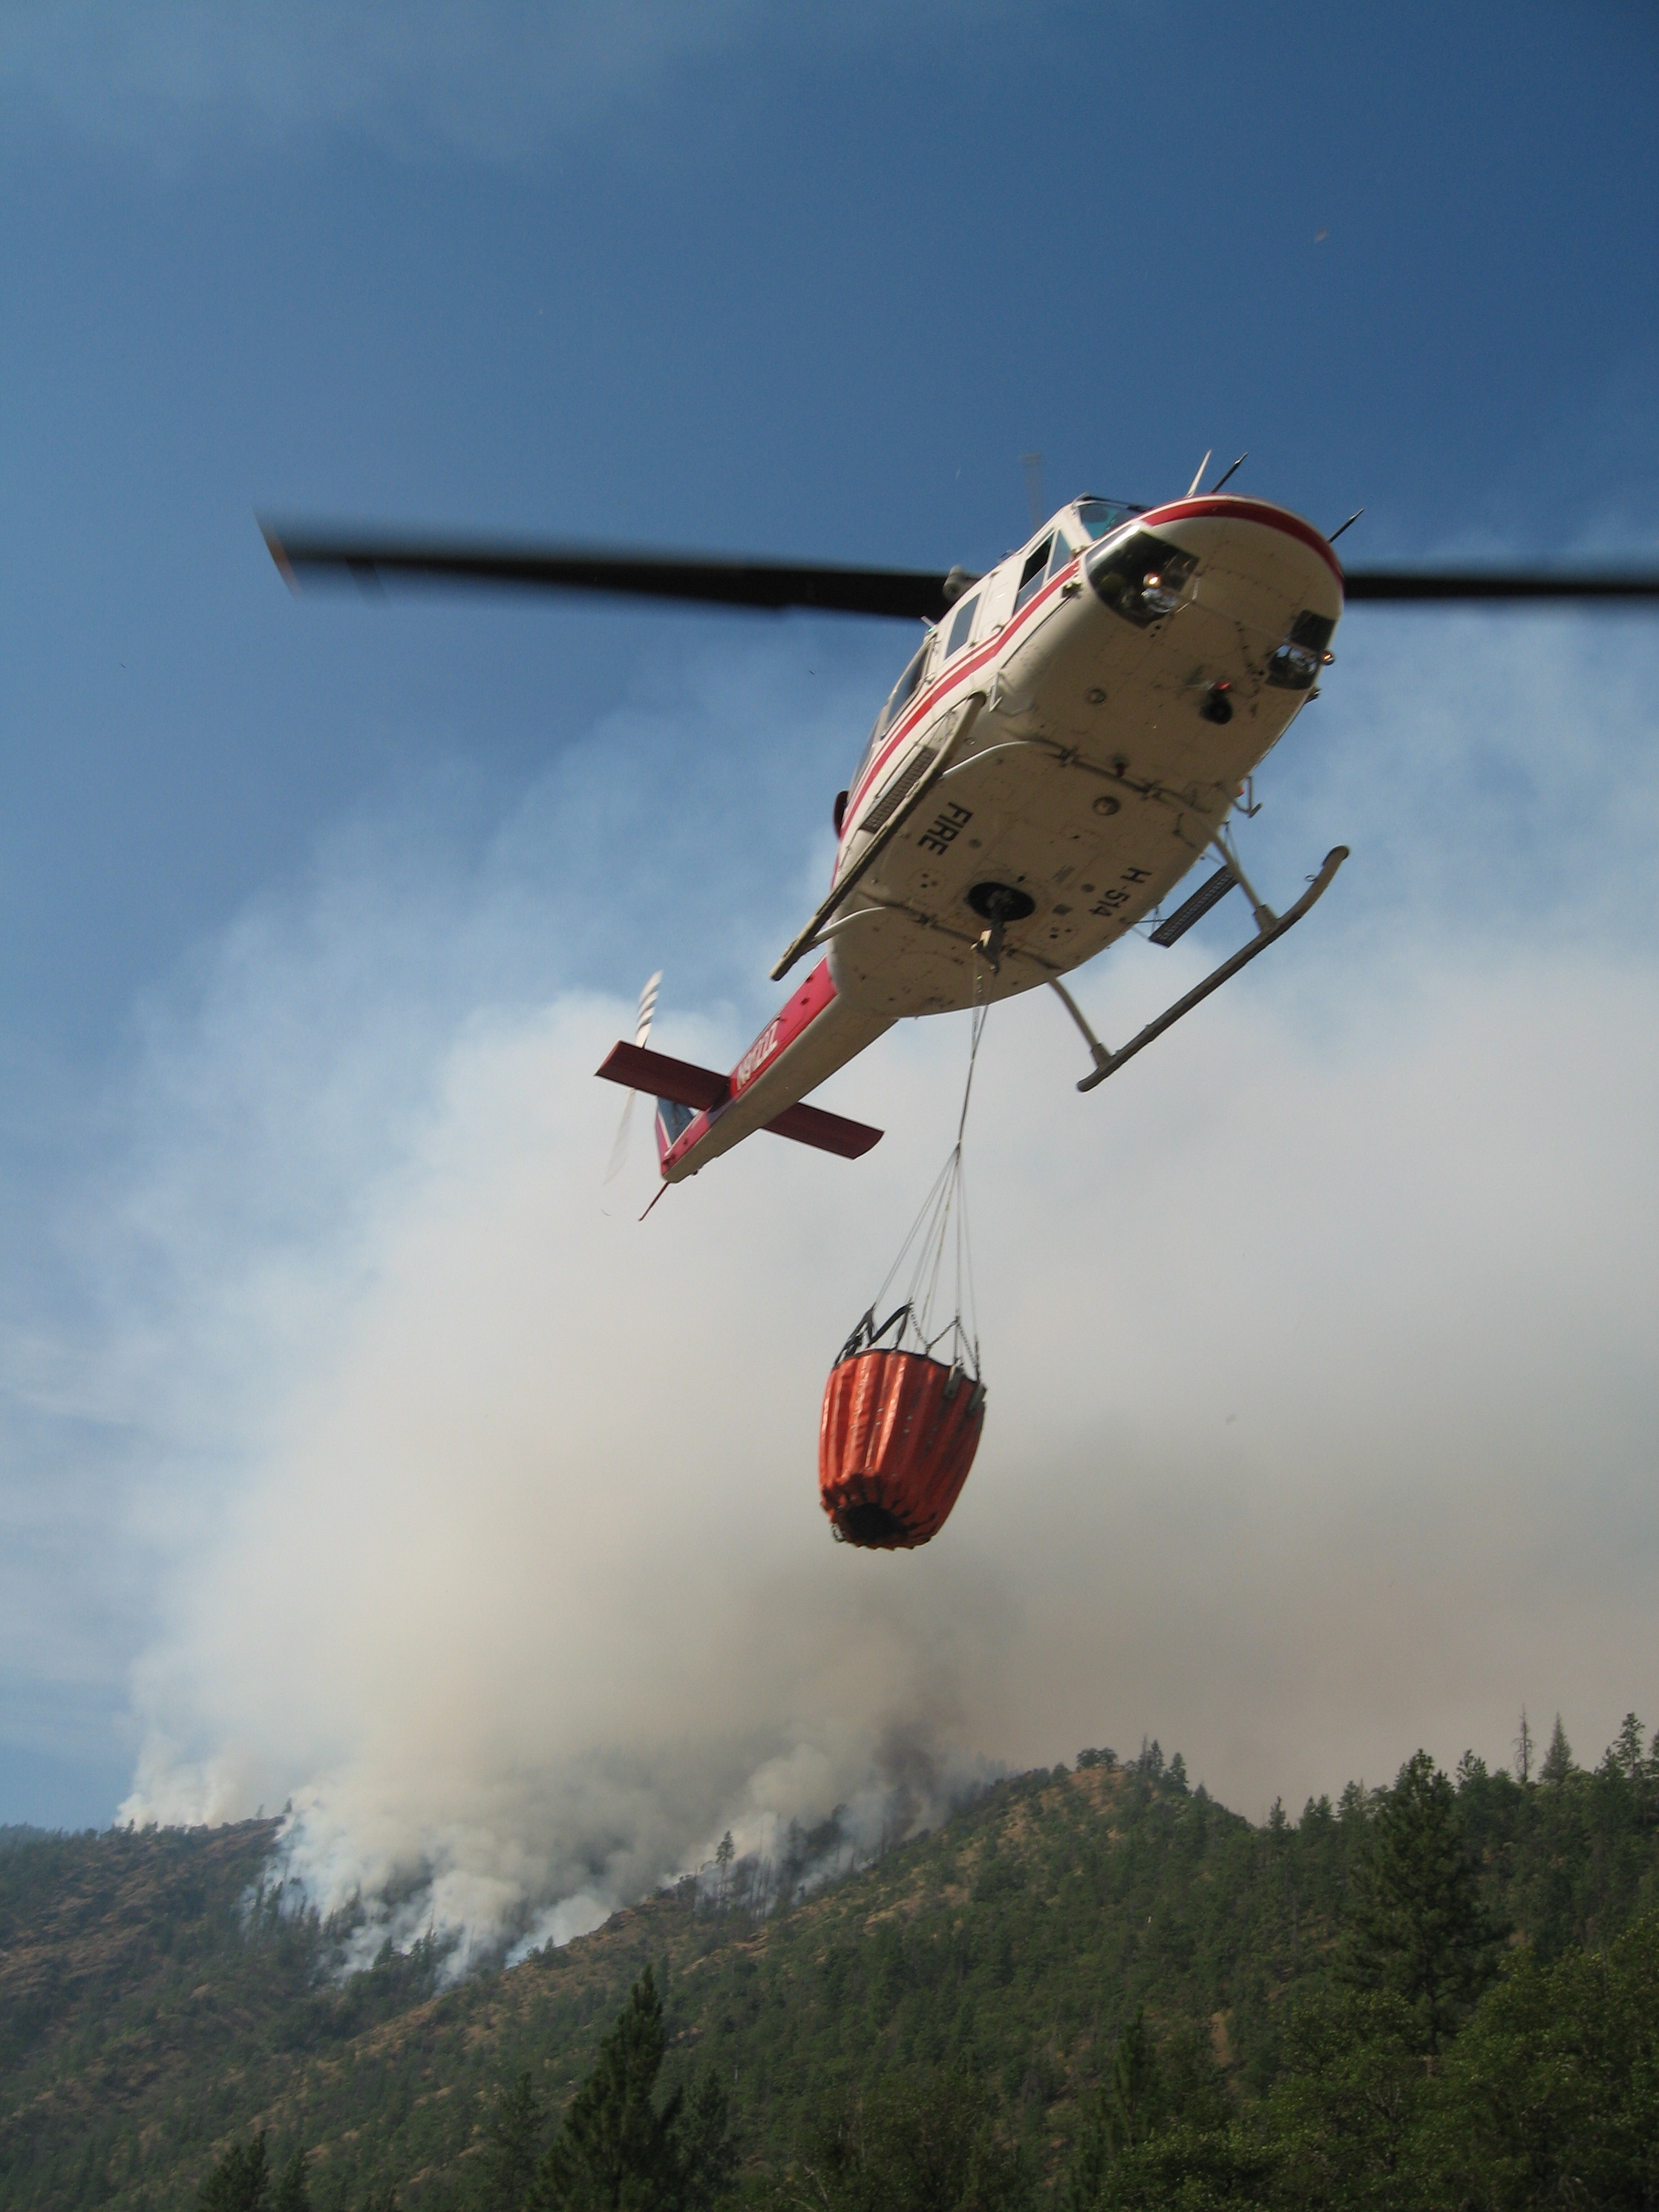 valley helicopters with Tnf Helicopter Onsite And Available For Wildfires on Us Army To Deploy 1400 Airborne Troops To Afghanistan likewise A legend among legends in spec also Patrol Base 302 Afghanistan together with Downtownlosangeleshelicopterviews in addition Postman Pat Van.